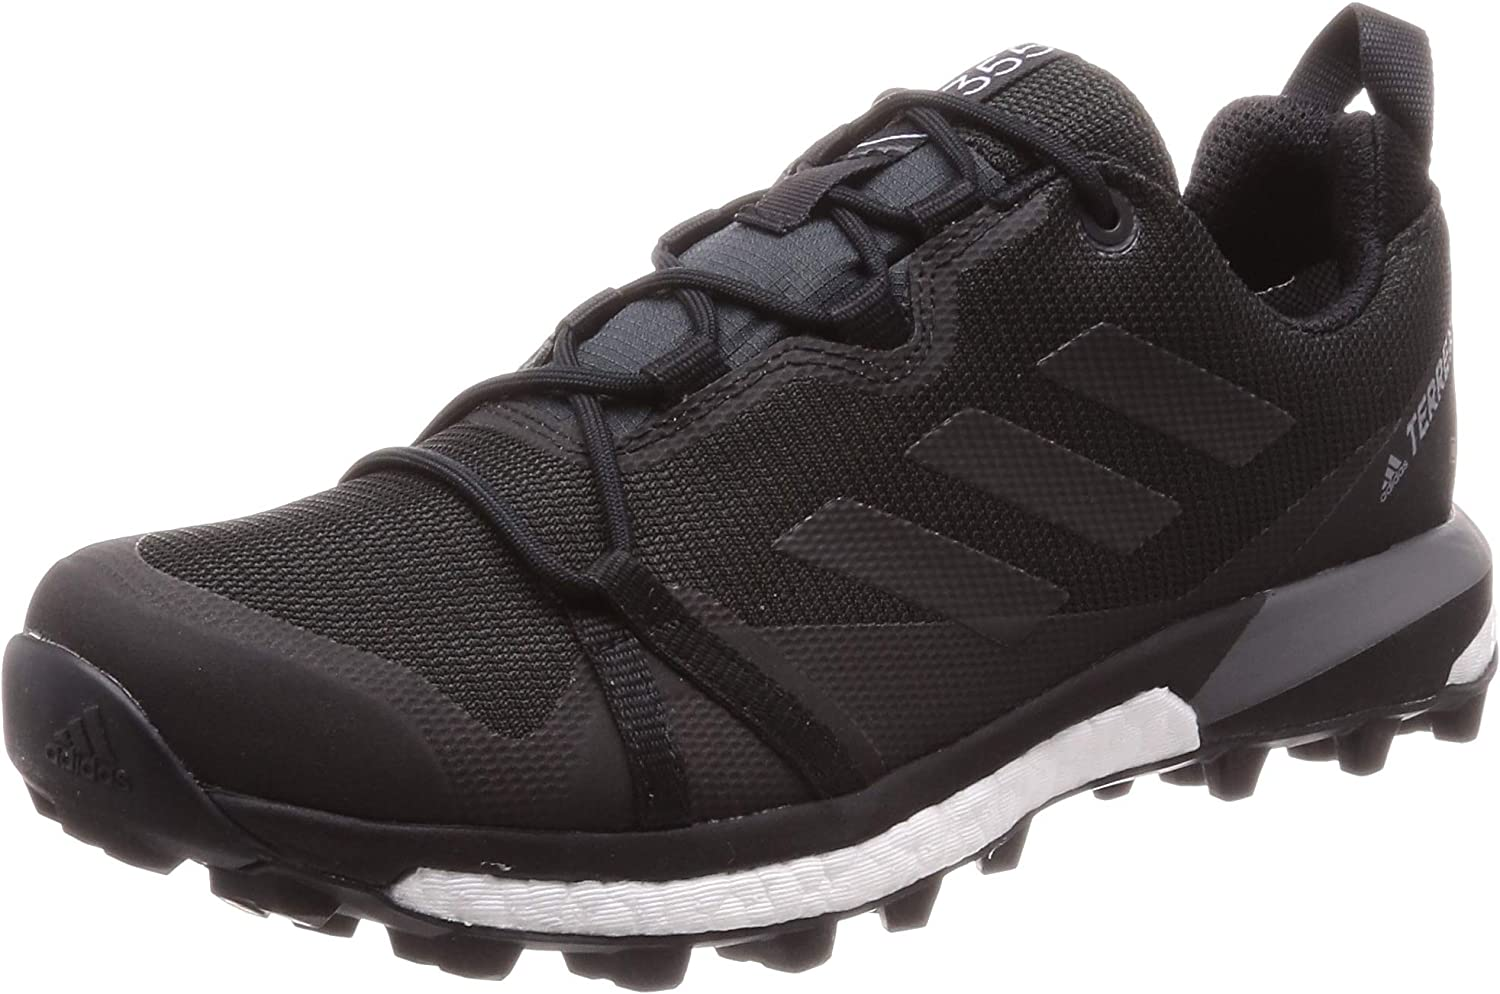 Adidas Men's Terrex Skychaser Lt Climbing shoes